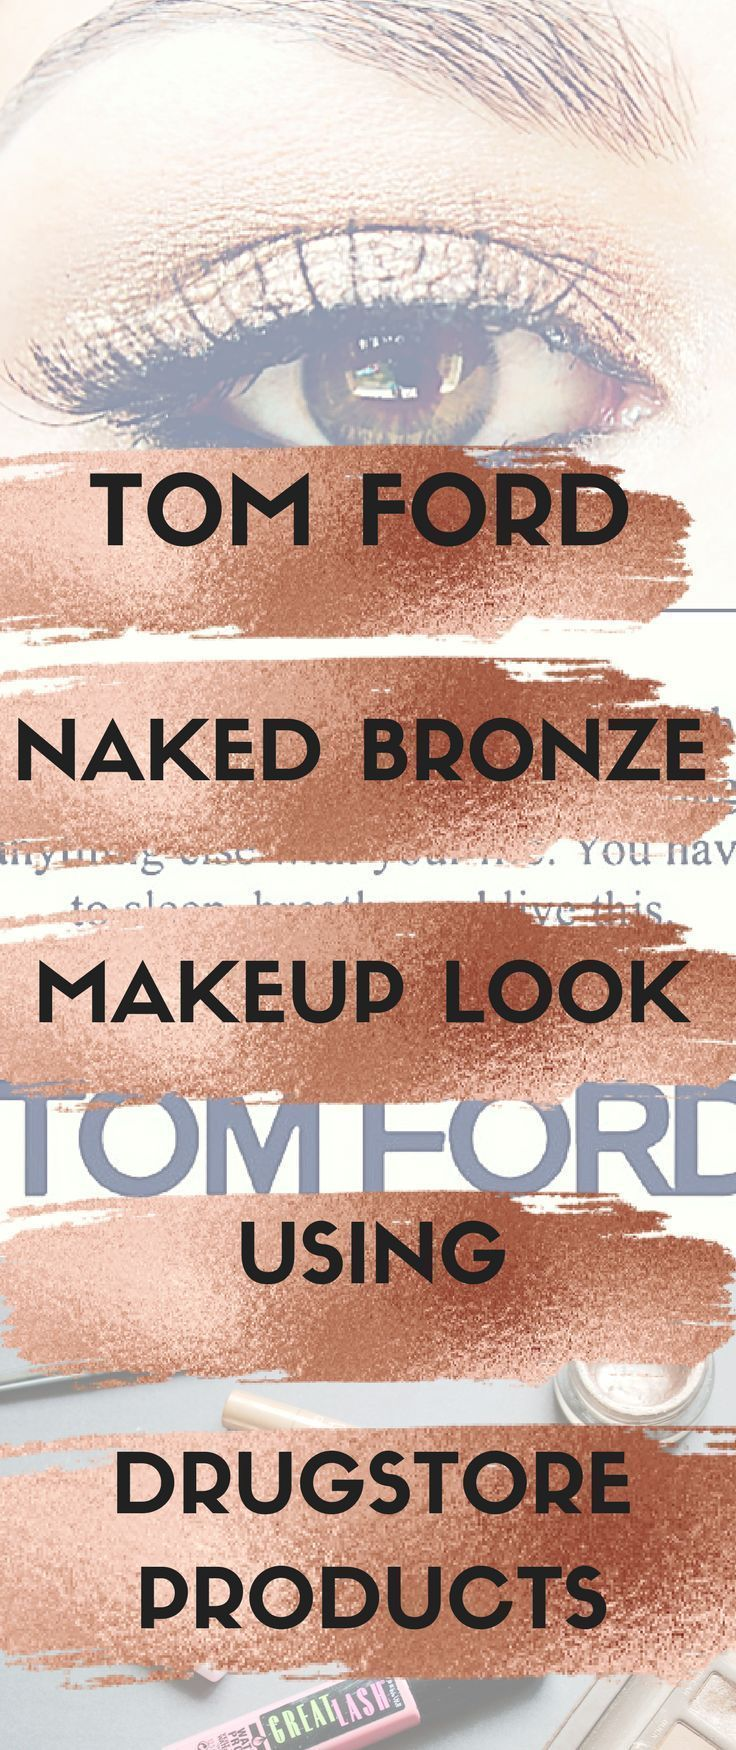 Photo of Tom Ford 'Naked Bronze' Eye Makeup Look Using Drugstore Products,  #Bronze #DRUGSTORE #Eye #F…